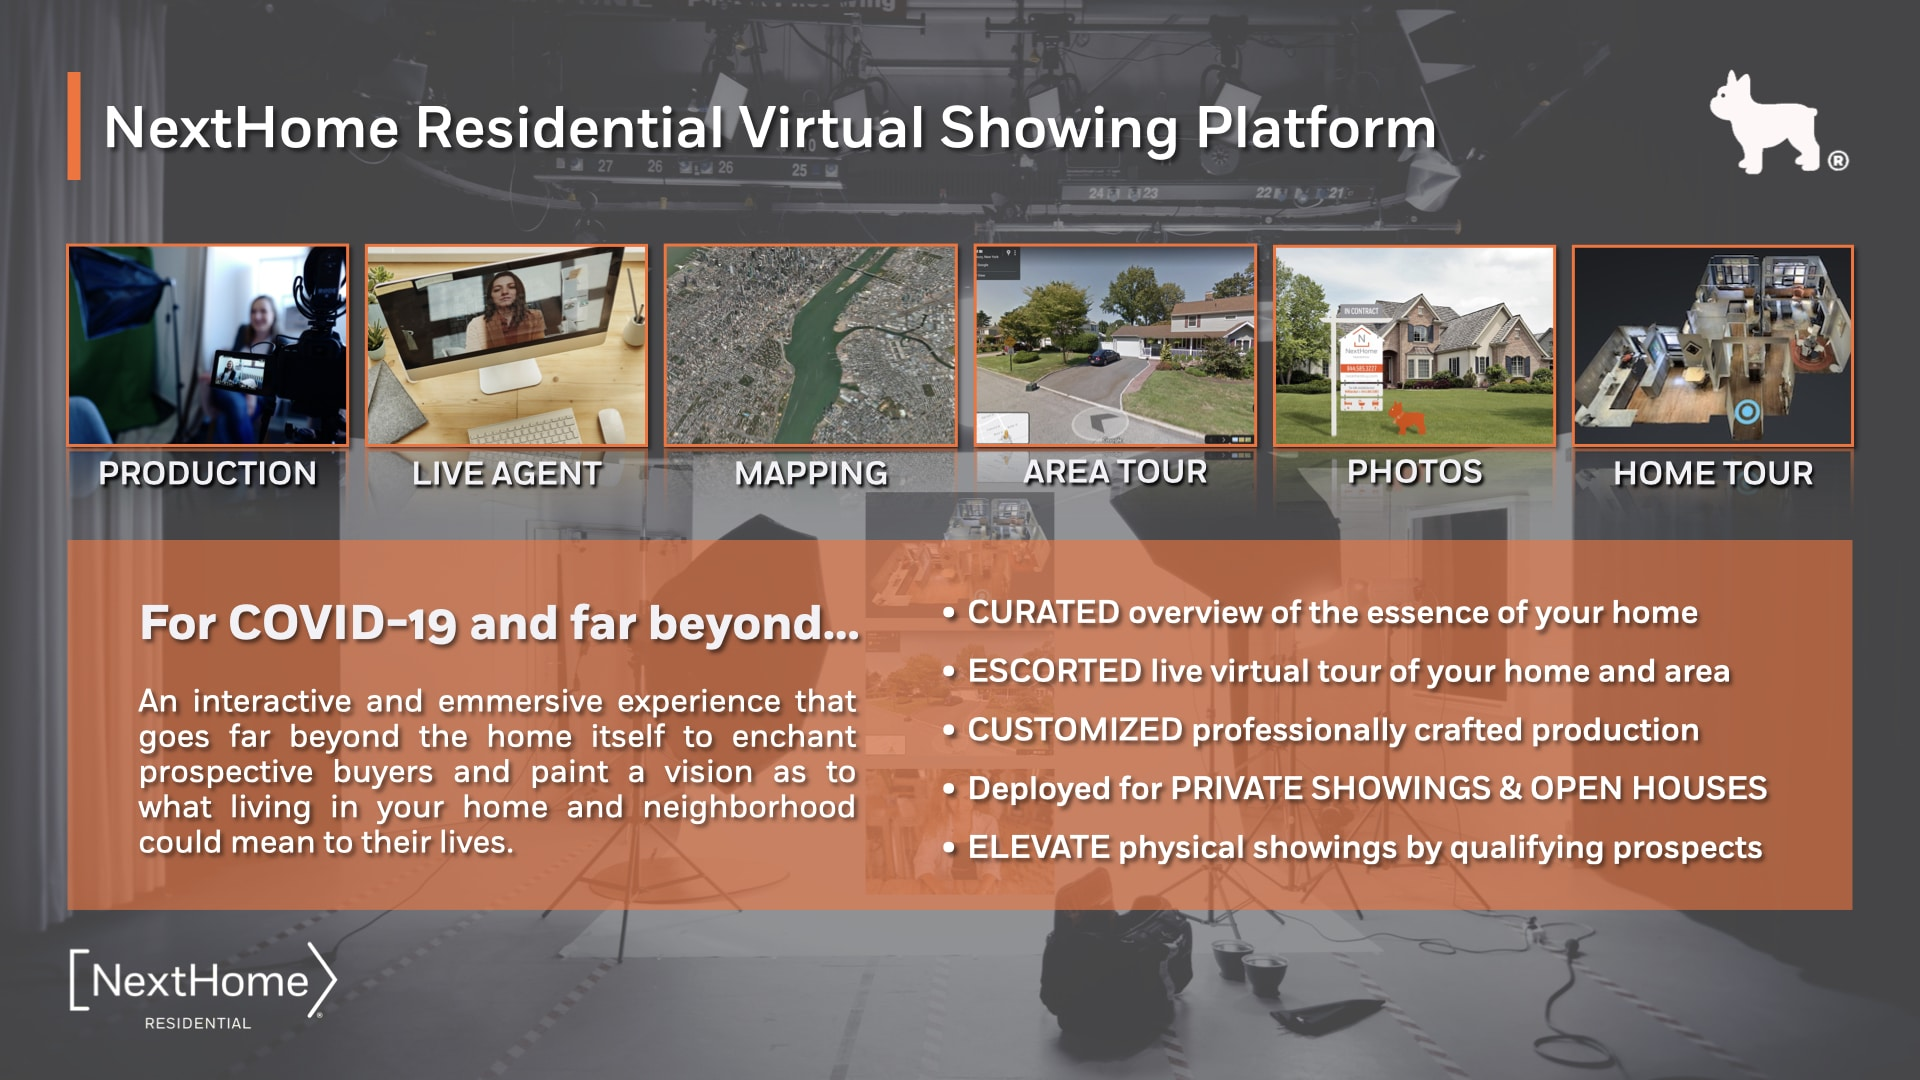 , Virtual Showing Platform, NextHome Residential | New York Licensed Real Estate Broker, NextHome Residential | New York Licensed Real Estate Broker